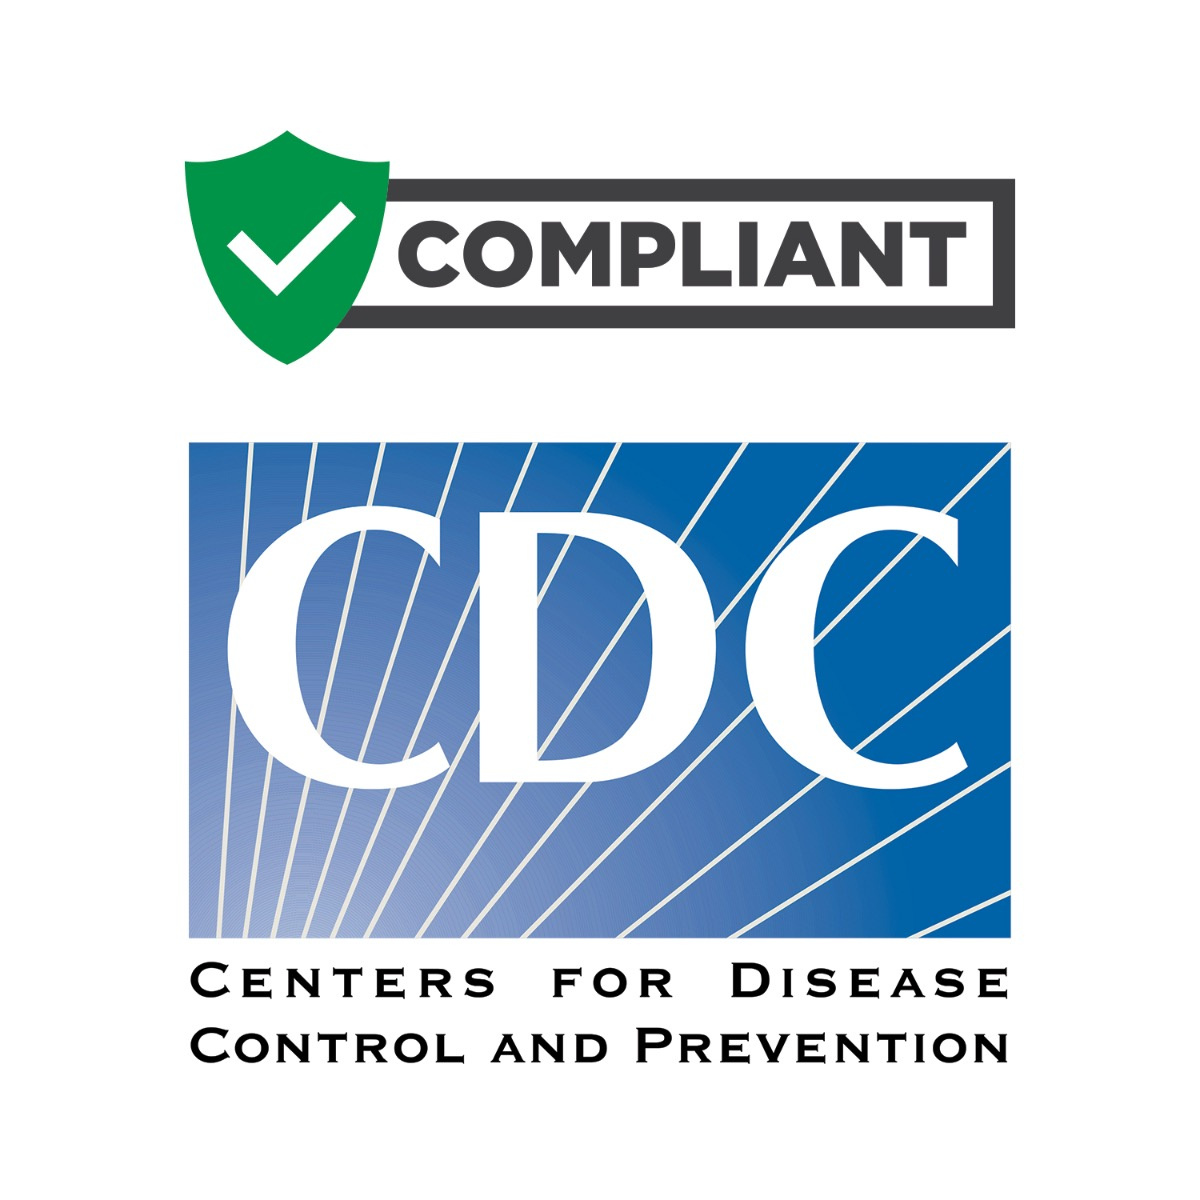 CDC compliant